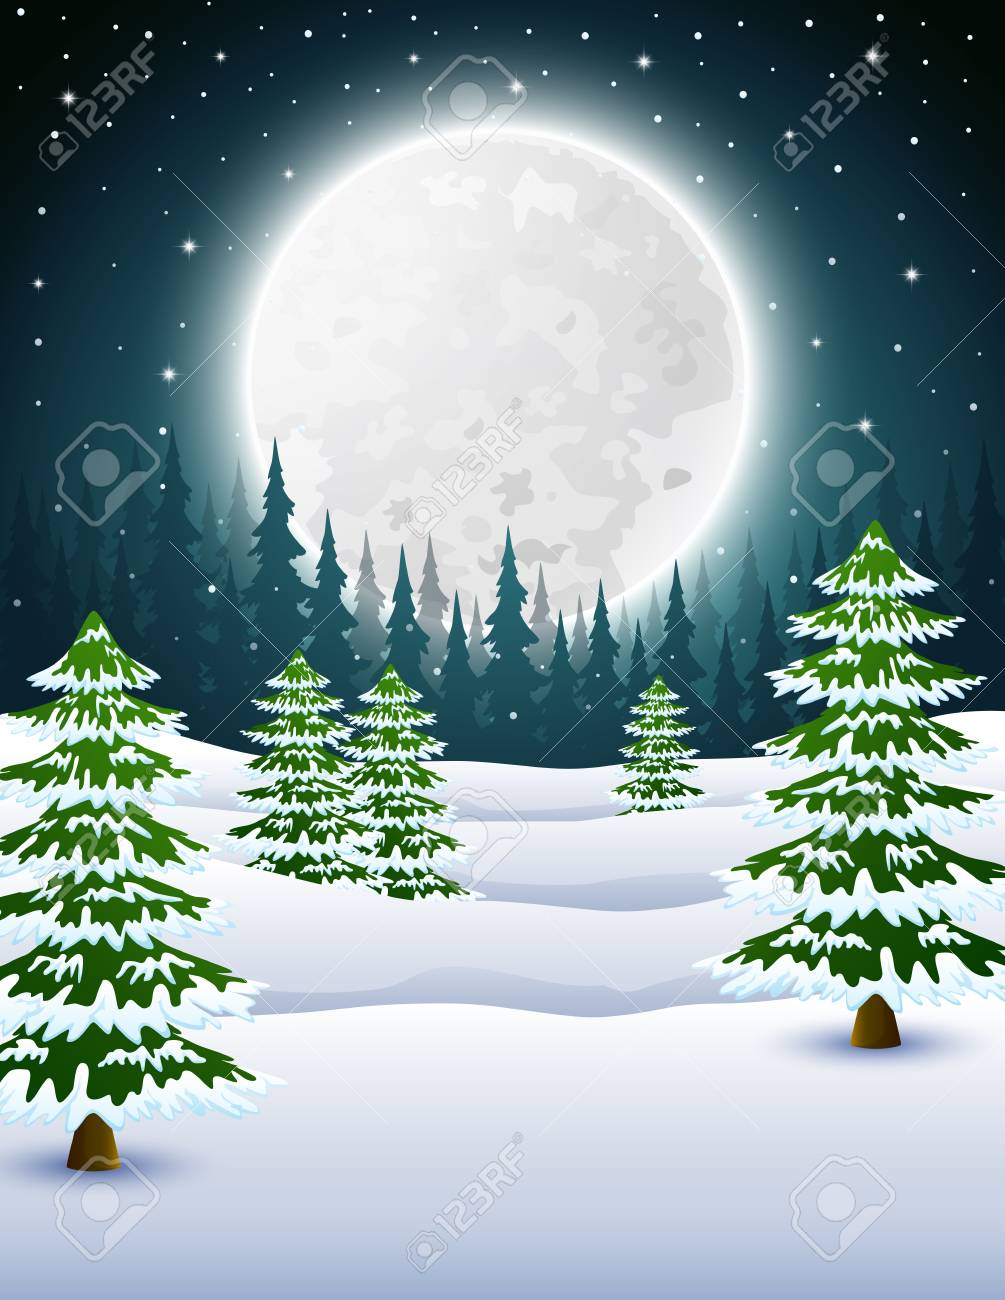 Cartoon Of Winter Night Background With Pine Trees At Night Royalty Free Cliparts Vectors And Stock Illustration Image 111773111 Download this cartoon illustrations of green trees vector illustration now. cartoon of winter night background with pine trees at night